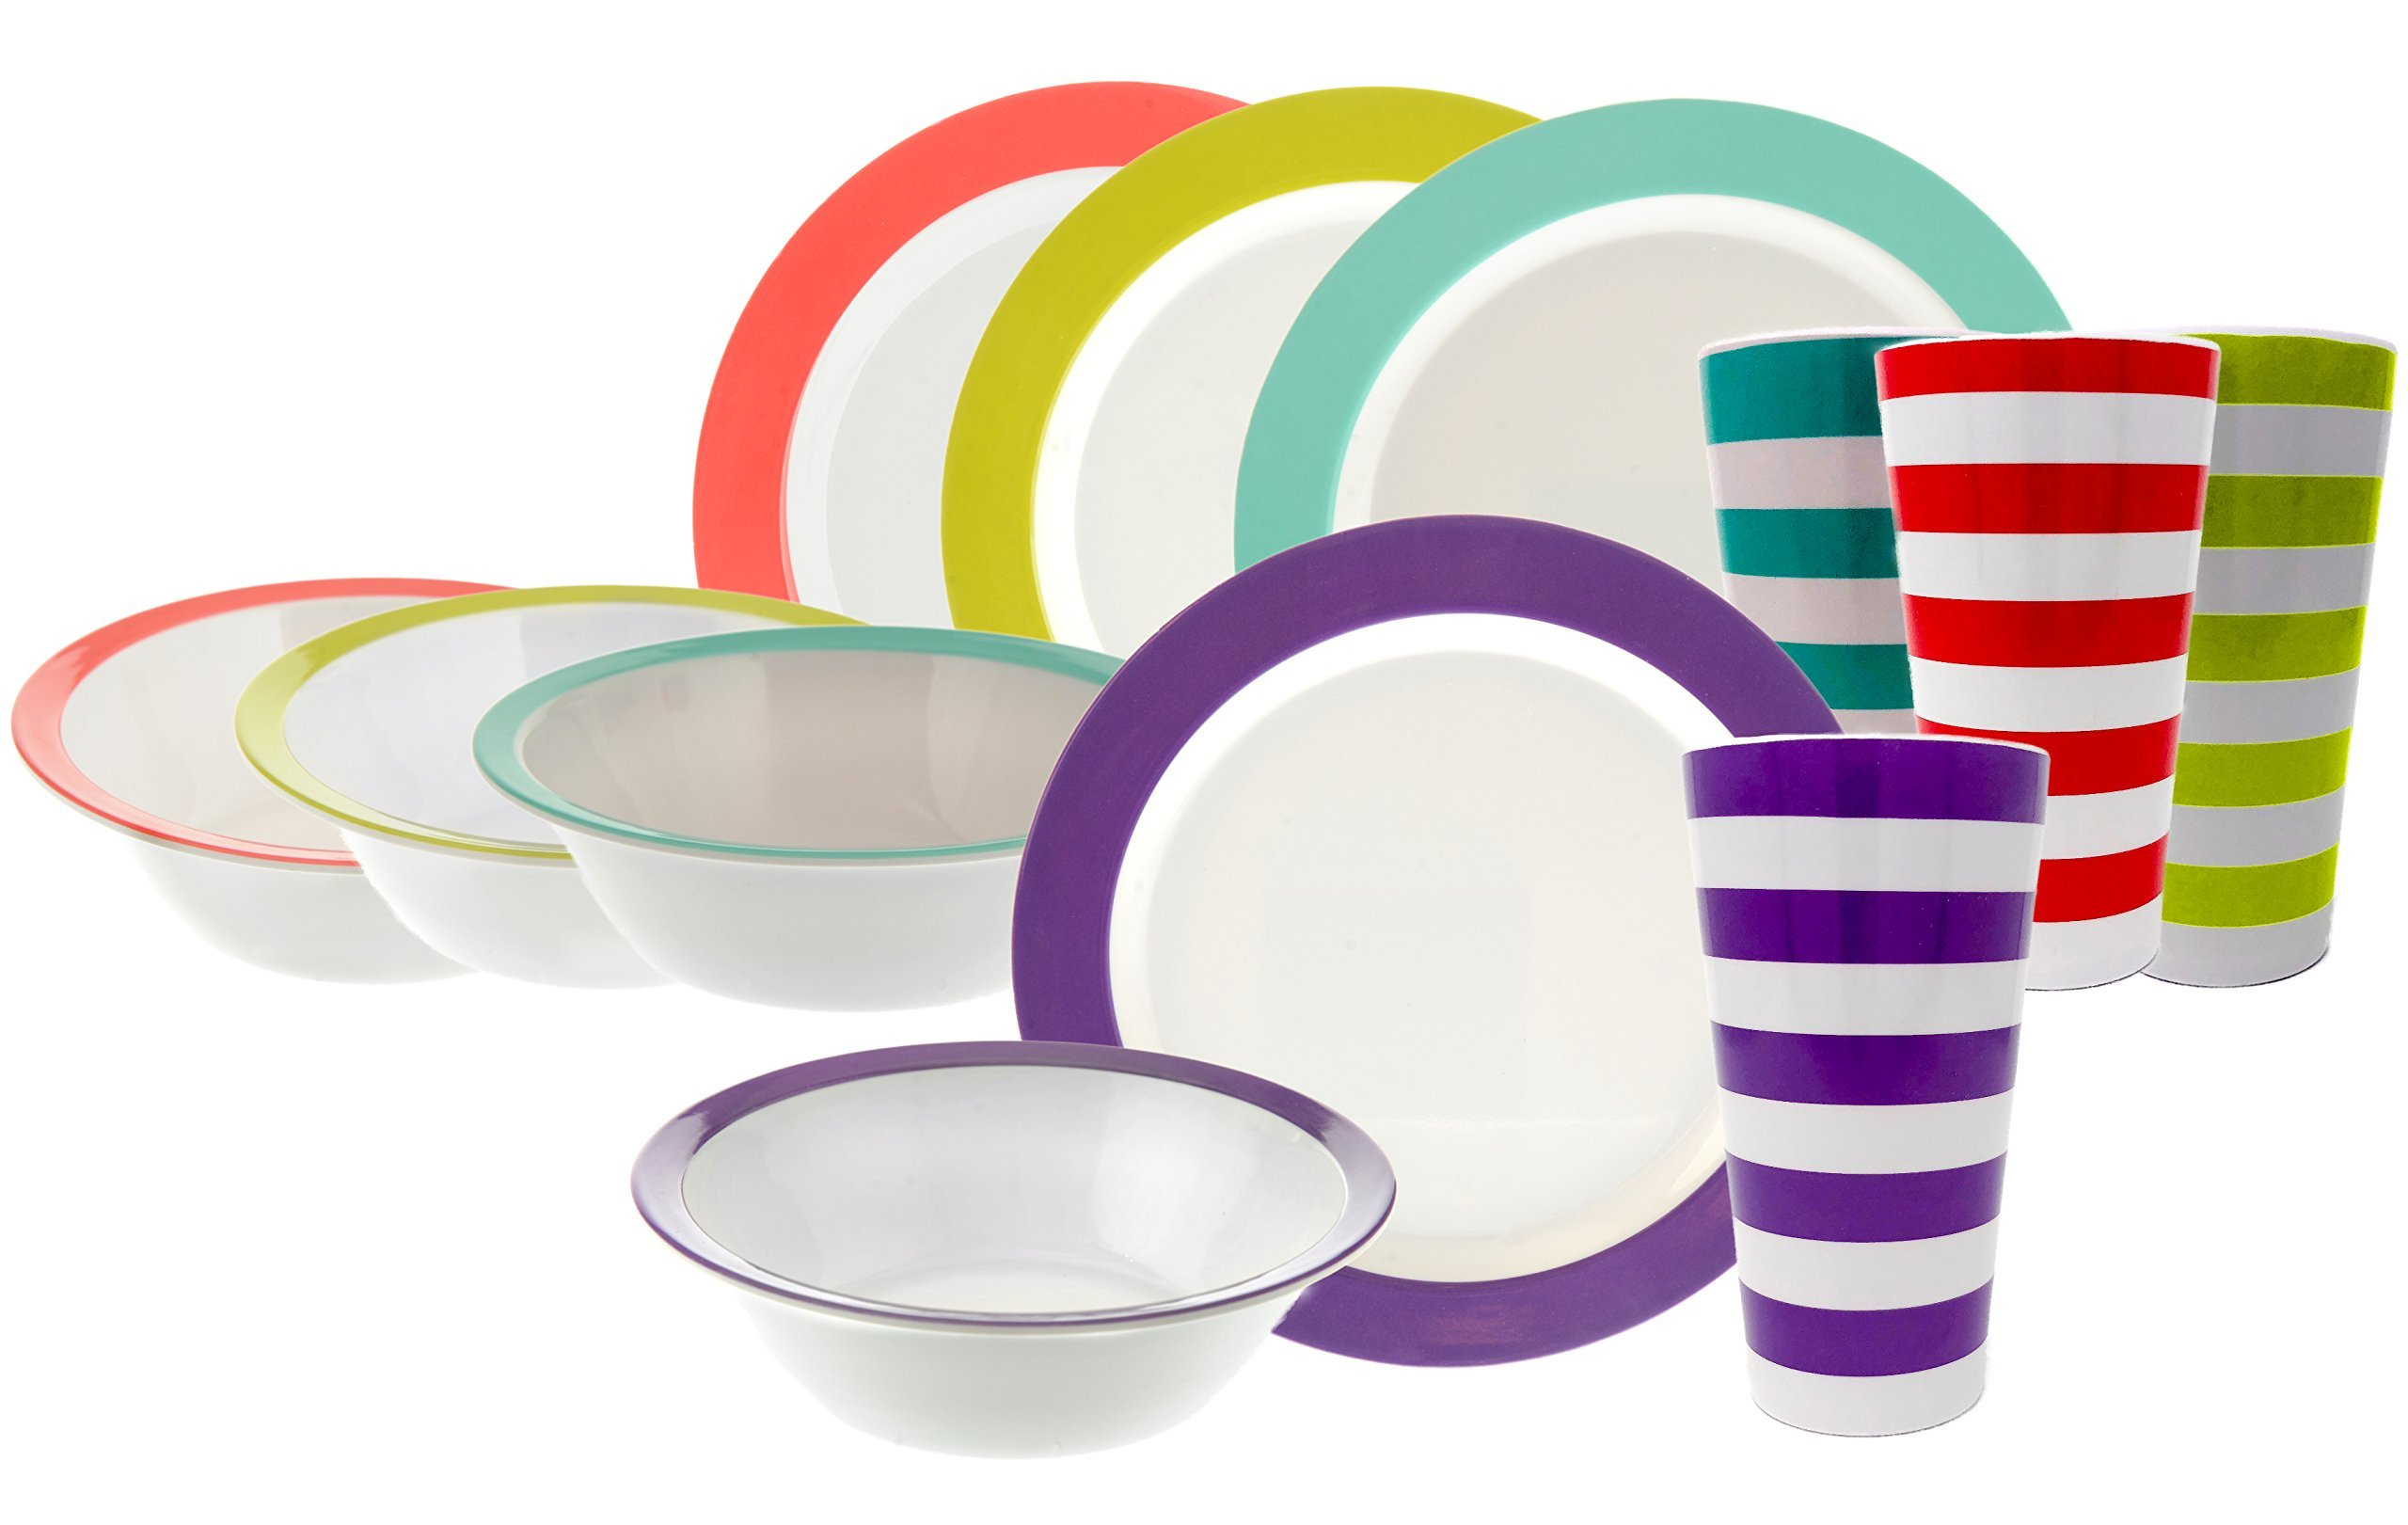 Handi-Ware 12-Piece MultiColor Classic Wide Rim Melamine Set - Indoor/Outdoor Dinnerware Set - Service For 4 - by Unity (Assorted w/Tumblers)